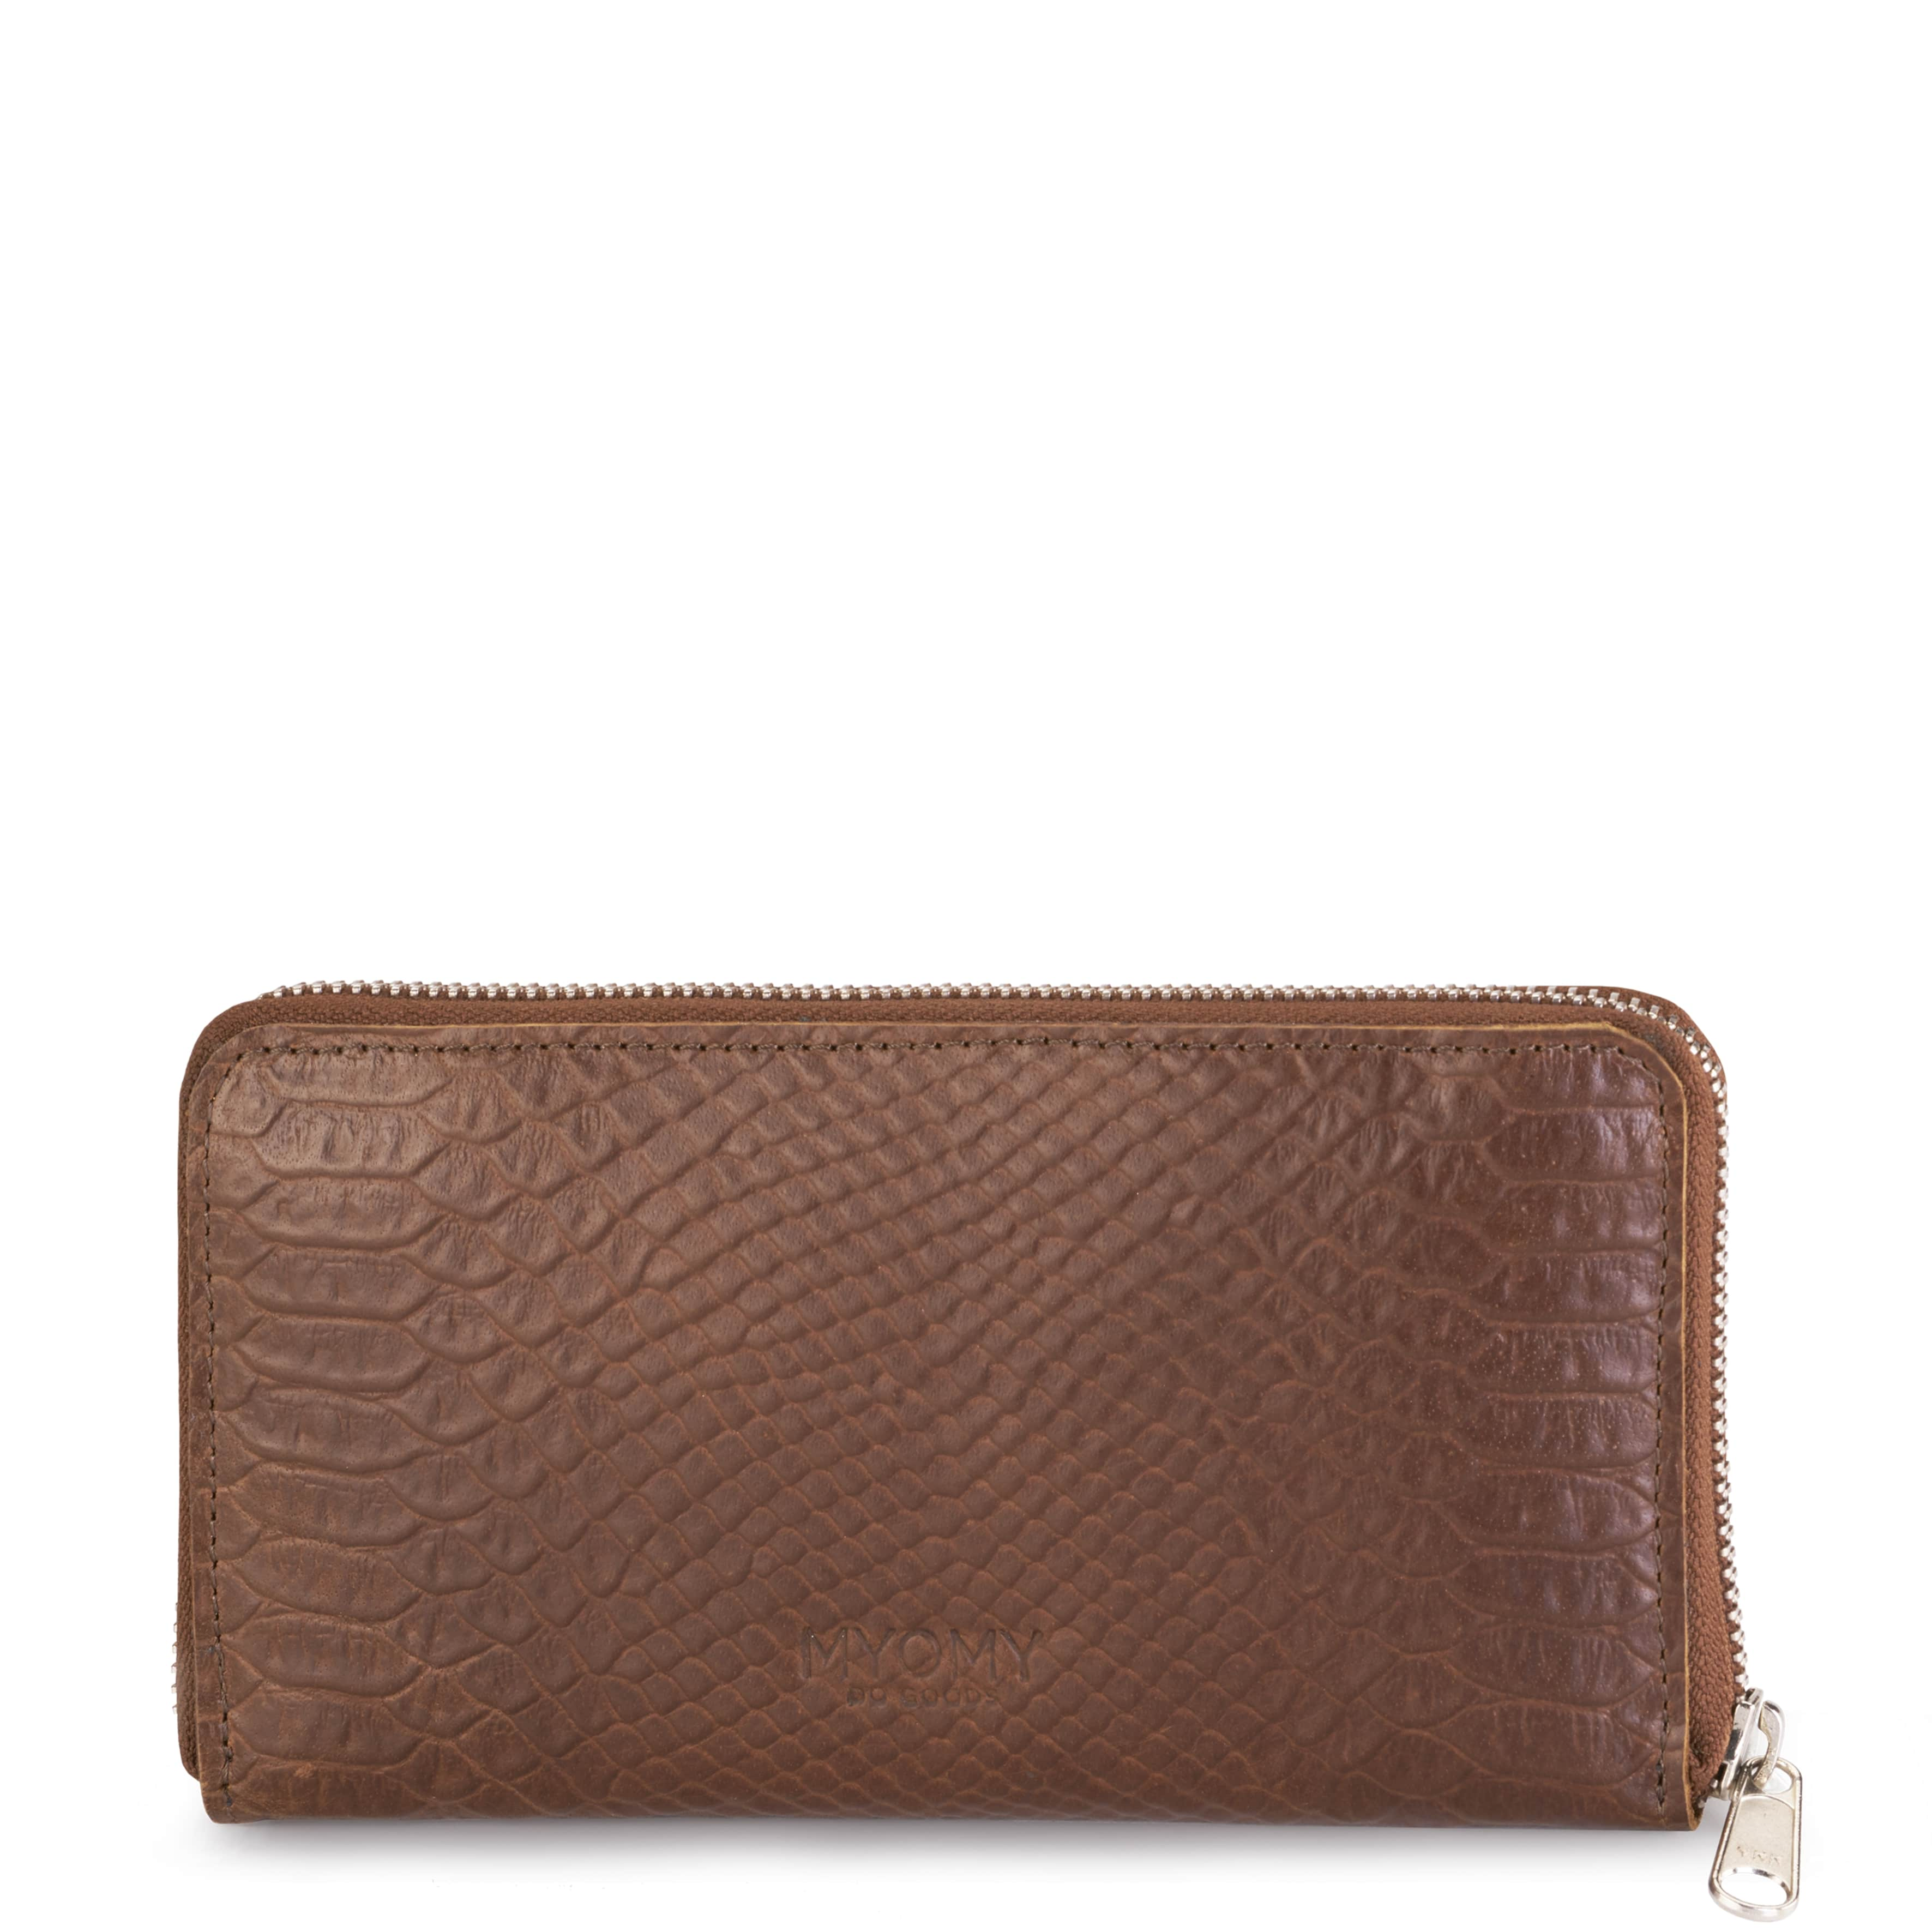 MY PAPER BAG Wallet Large (RFID) - anaconda brandy